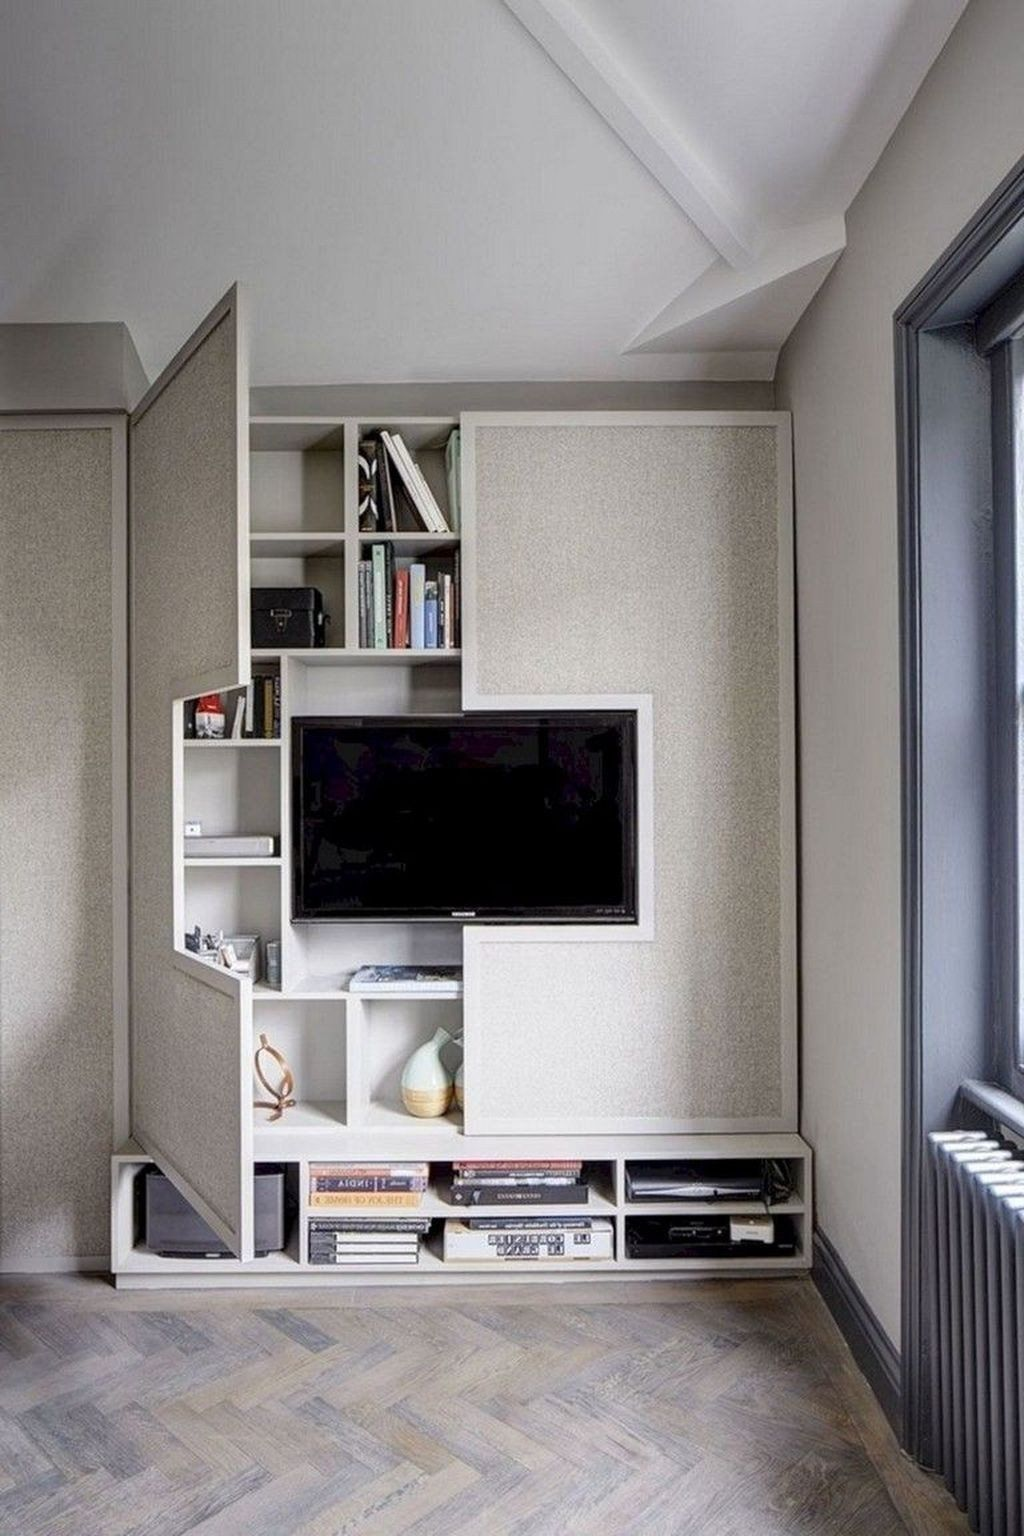 Small Living Room Storage Ideas 20 Minimalist Bedroom Decorating Ideas For Small Spaces In 2020 Small Space Bedroom Small Space Storage Bedroom Minimalist Living Room